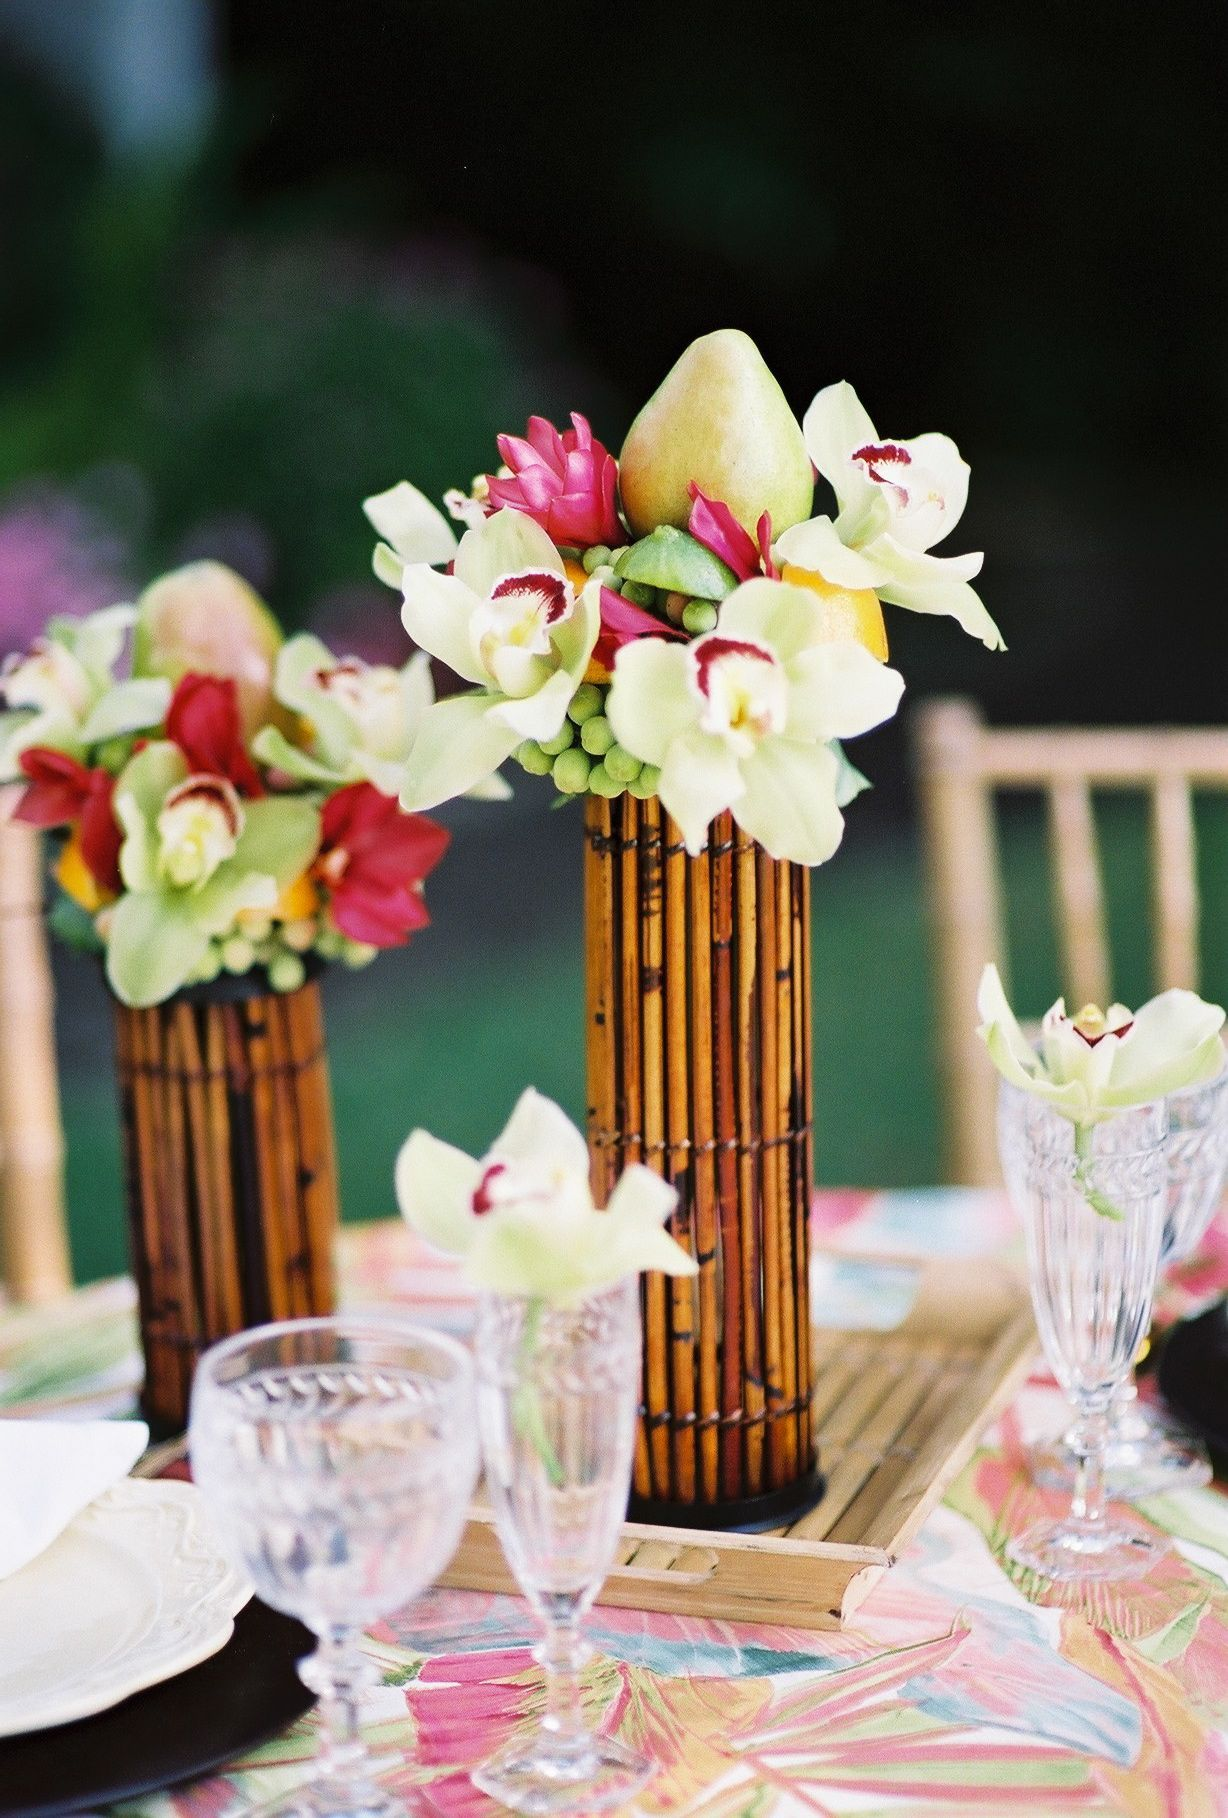 5 Incredible Flower Arrangements For a Last-Minute Dining Room Decor 3